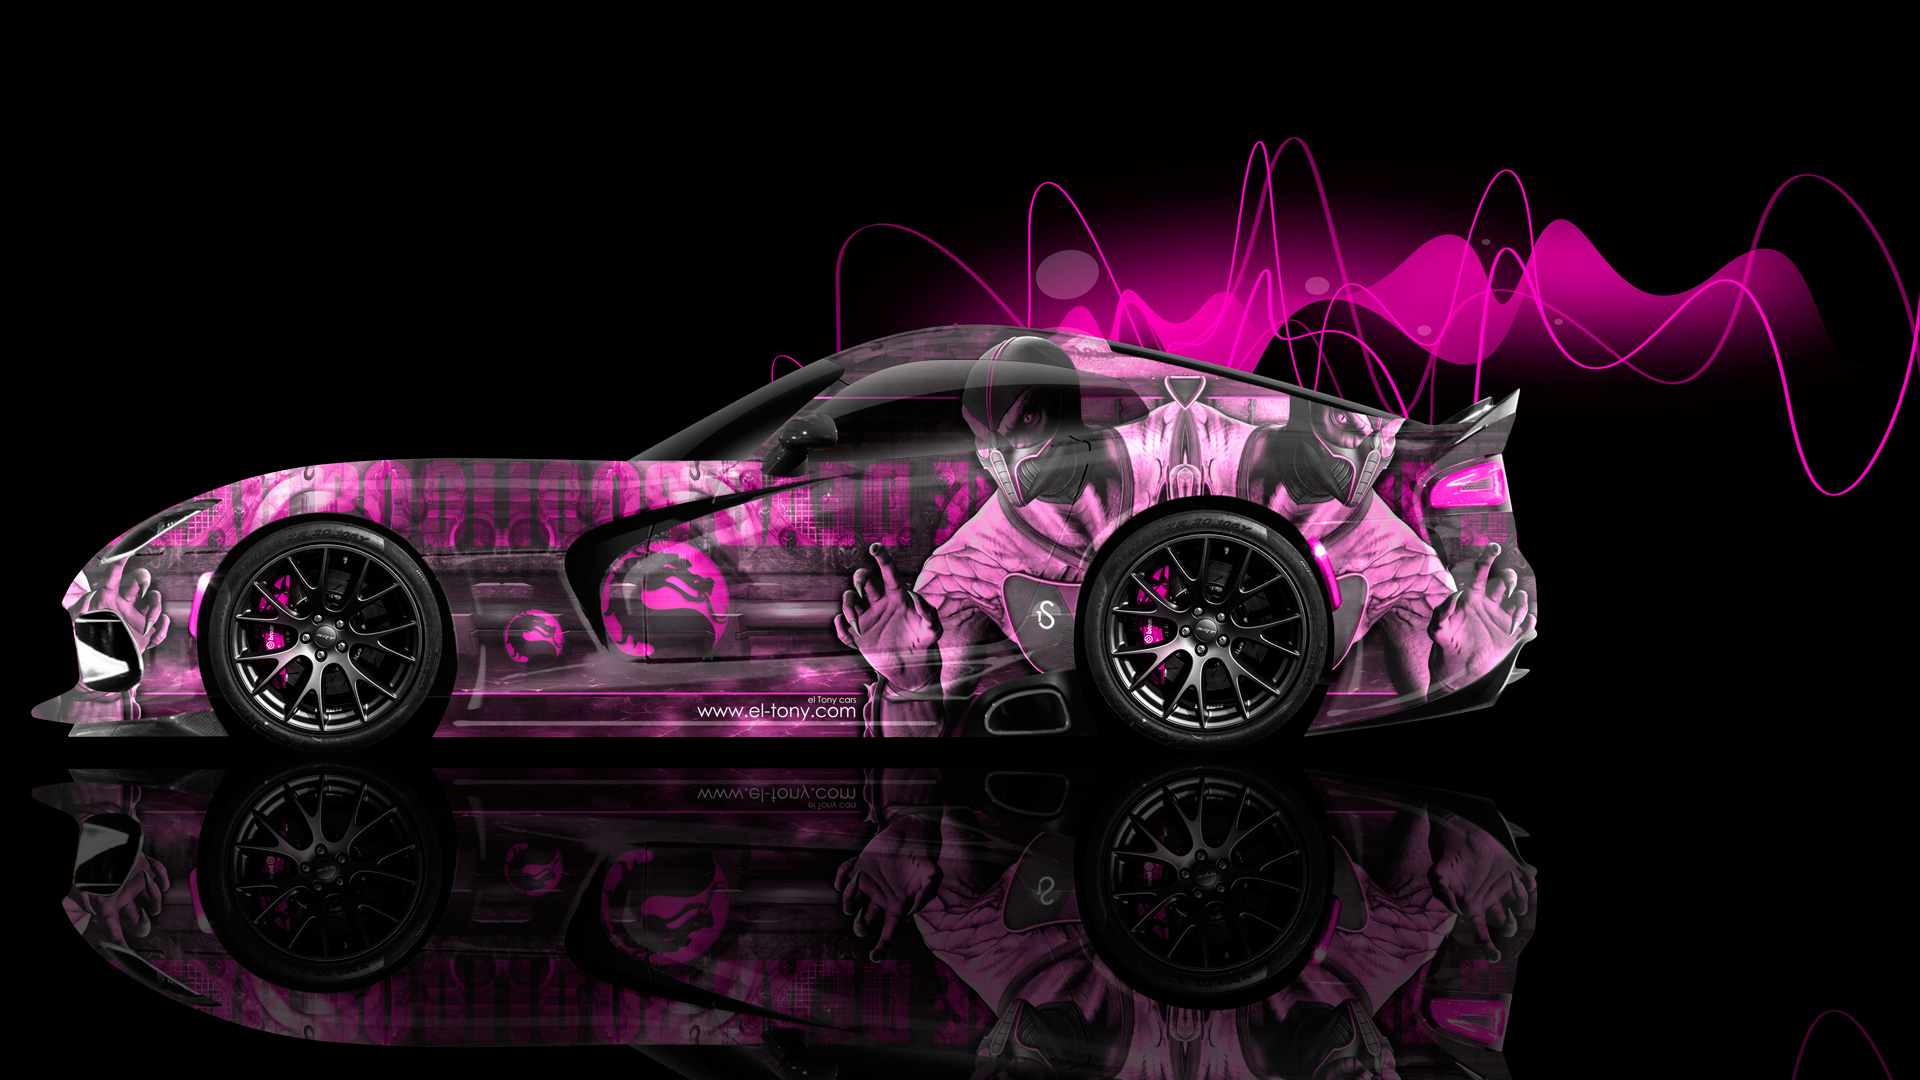 Dodge Viper Srt Crystal City Car Pink Neon Hd Wallpapers Design By Tony Kokhan   El Tony further Dodge Challenger Rt Trunk besides S L as well F together with Gjoof R. on 09 dodge challenger rt